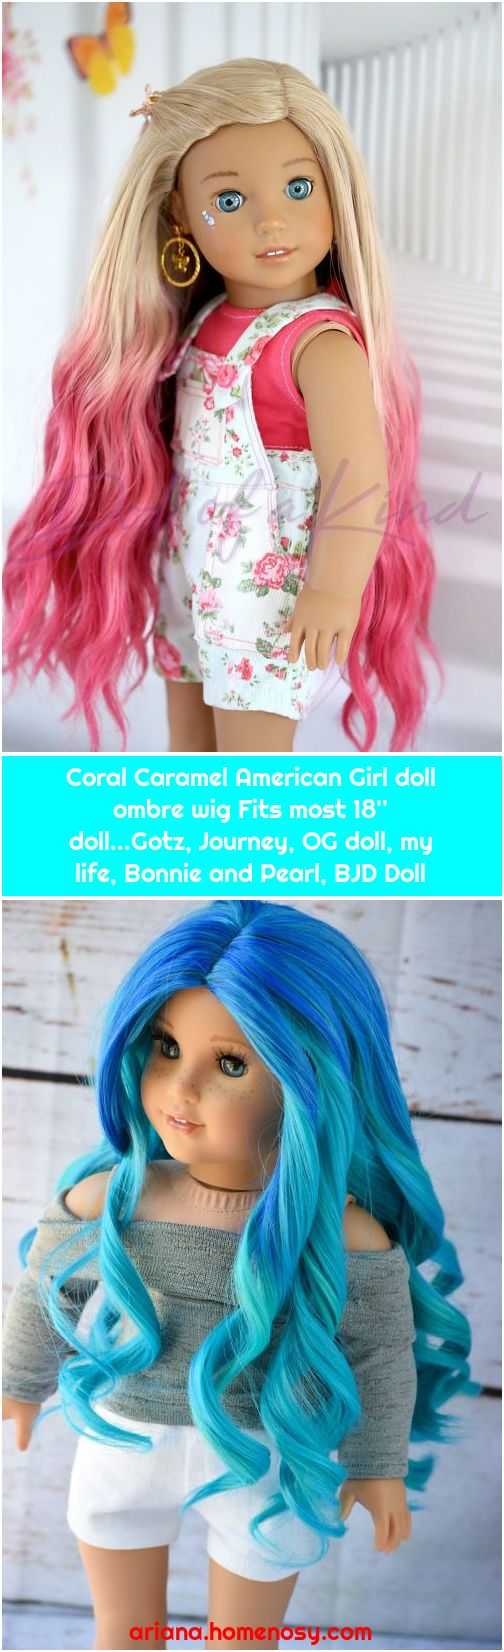 Coral Caramel American Girl doll ombre wig Fits most 18'' doll...Gotz, Journey, OG doll, my life, Bonnie and Pearl, BJD Doll